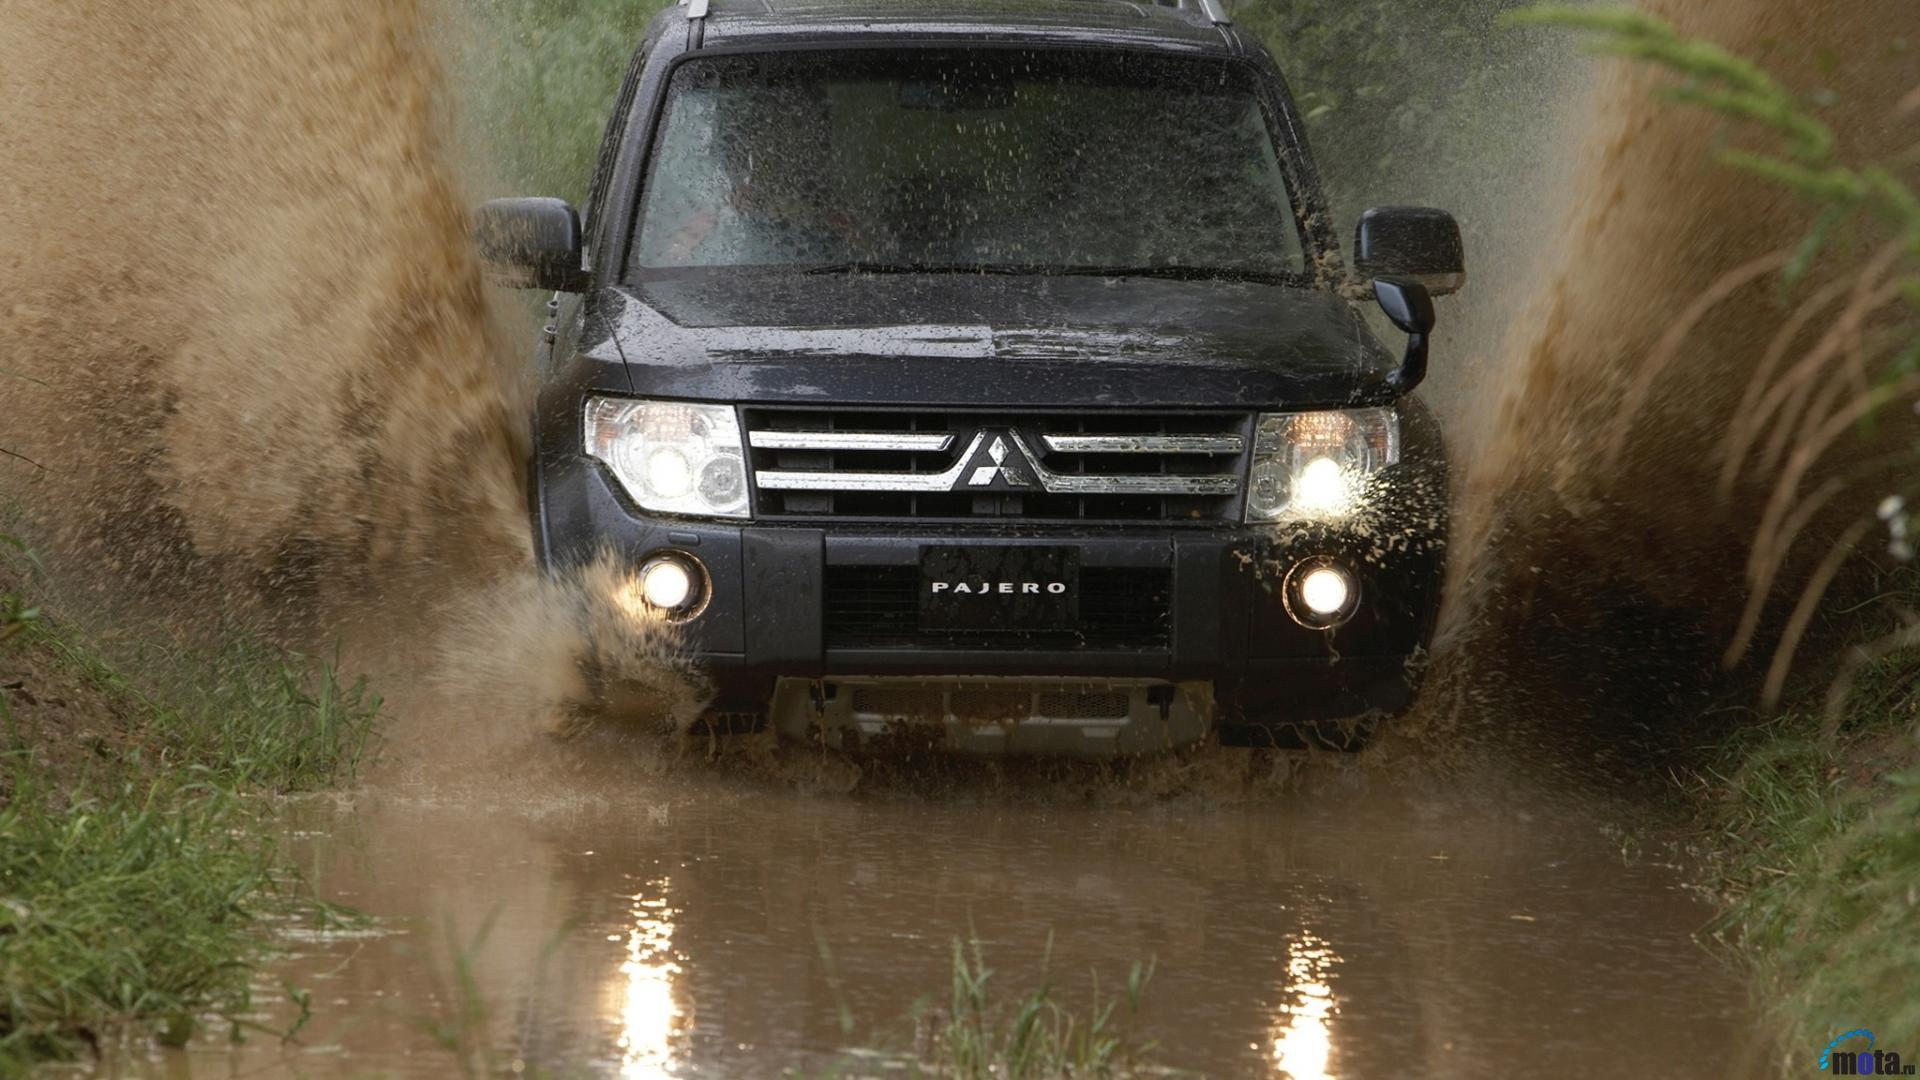 5 Mitsubishi Pajero HD Wallpapers | Backgrounds - Wallpaper Abyss